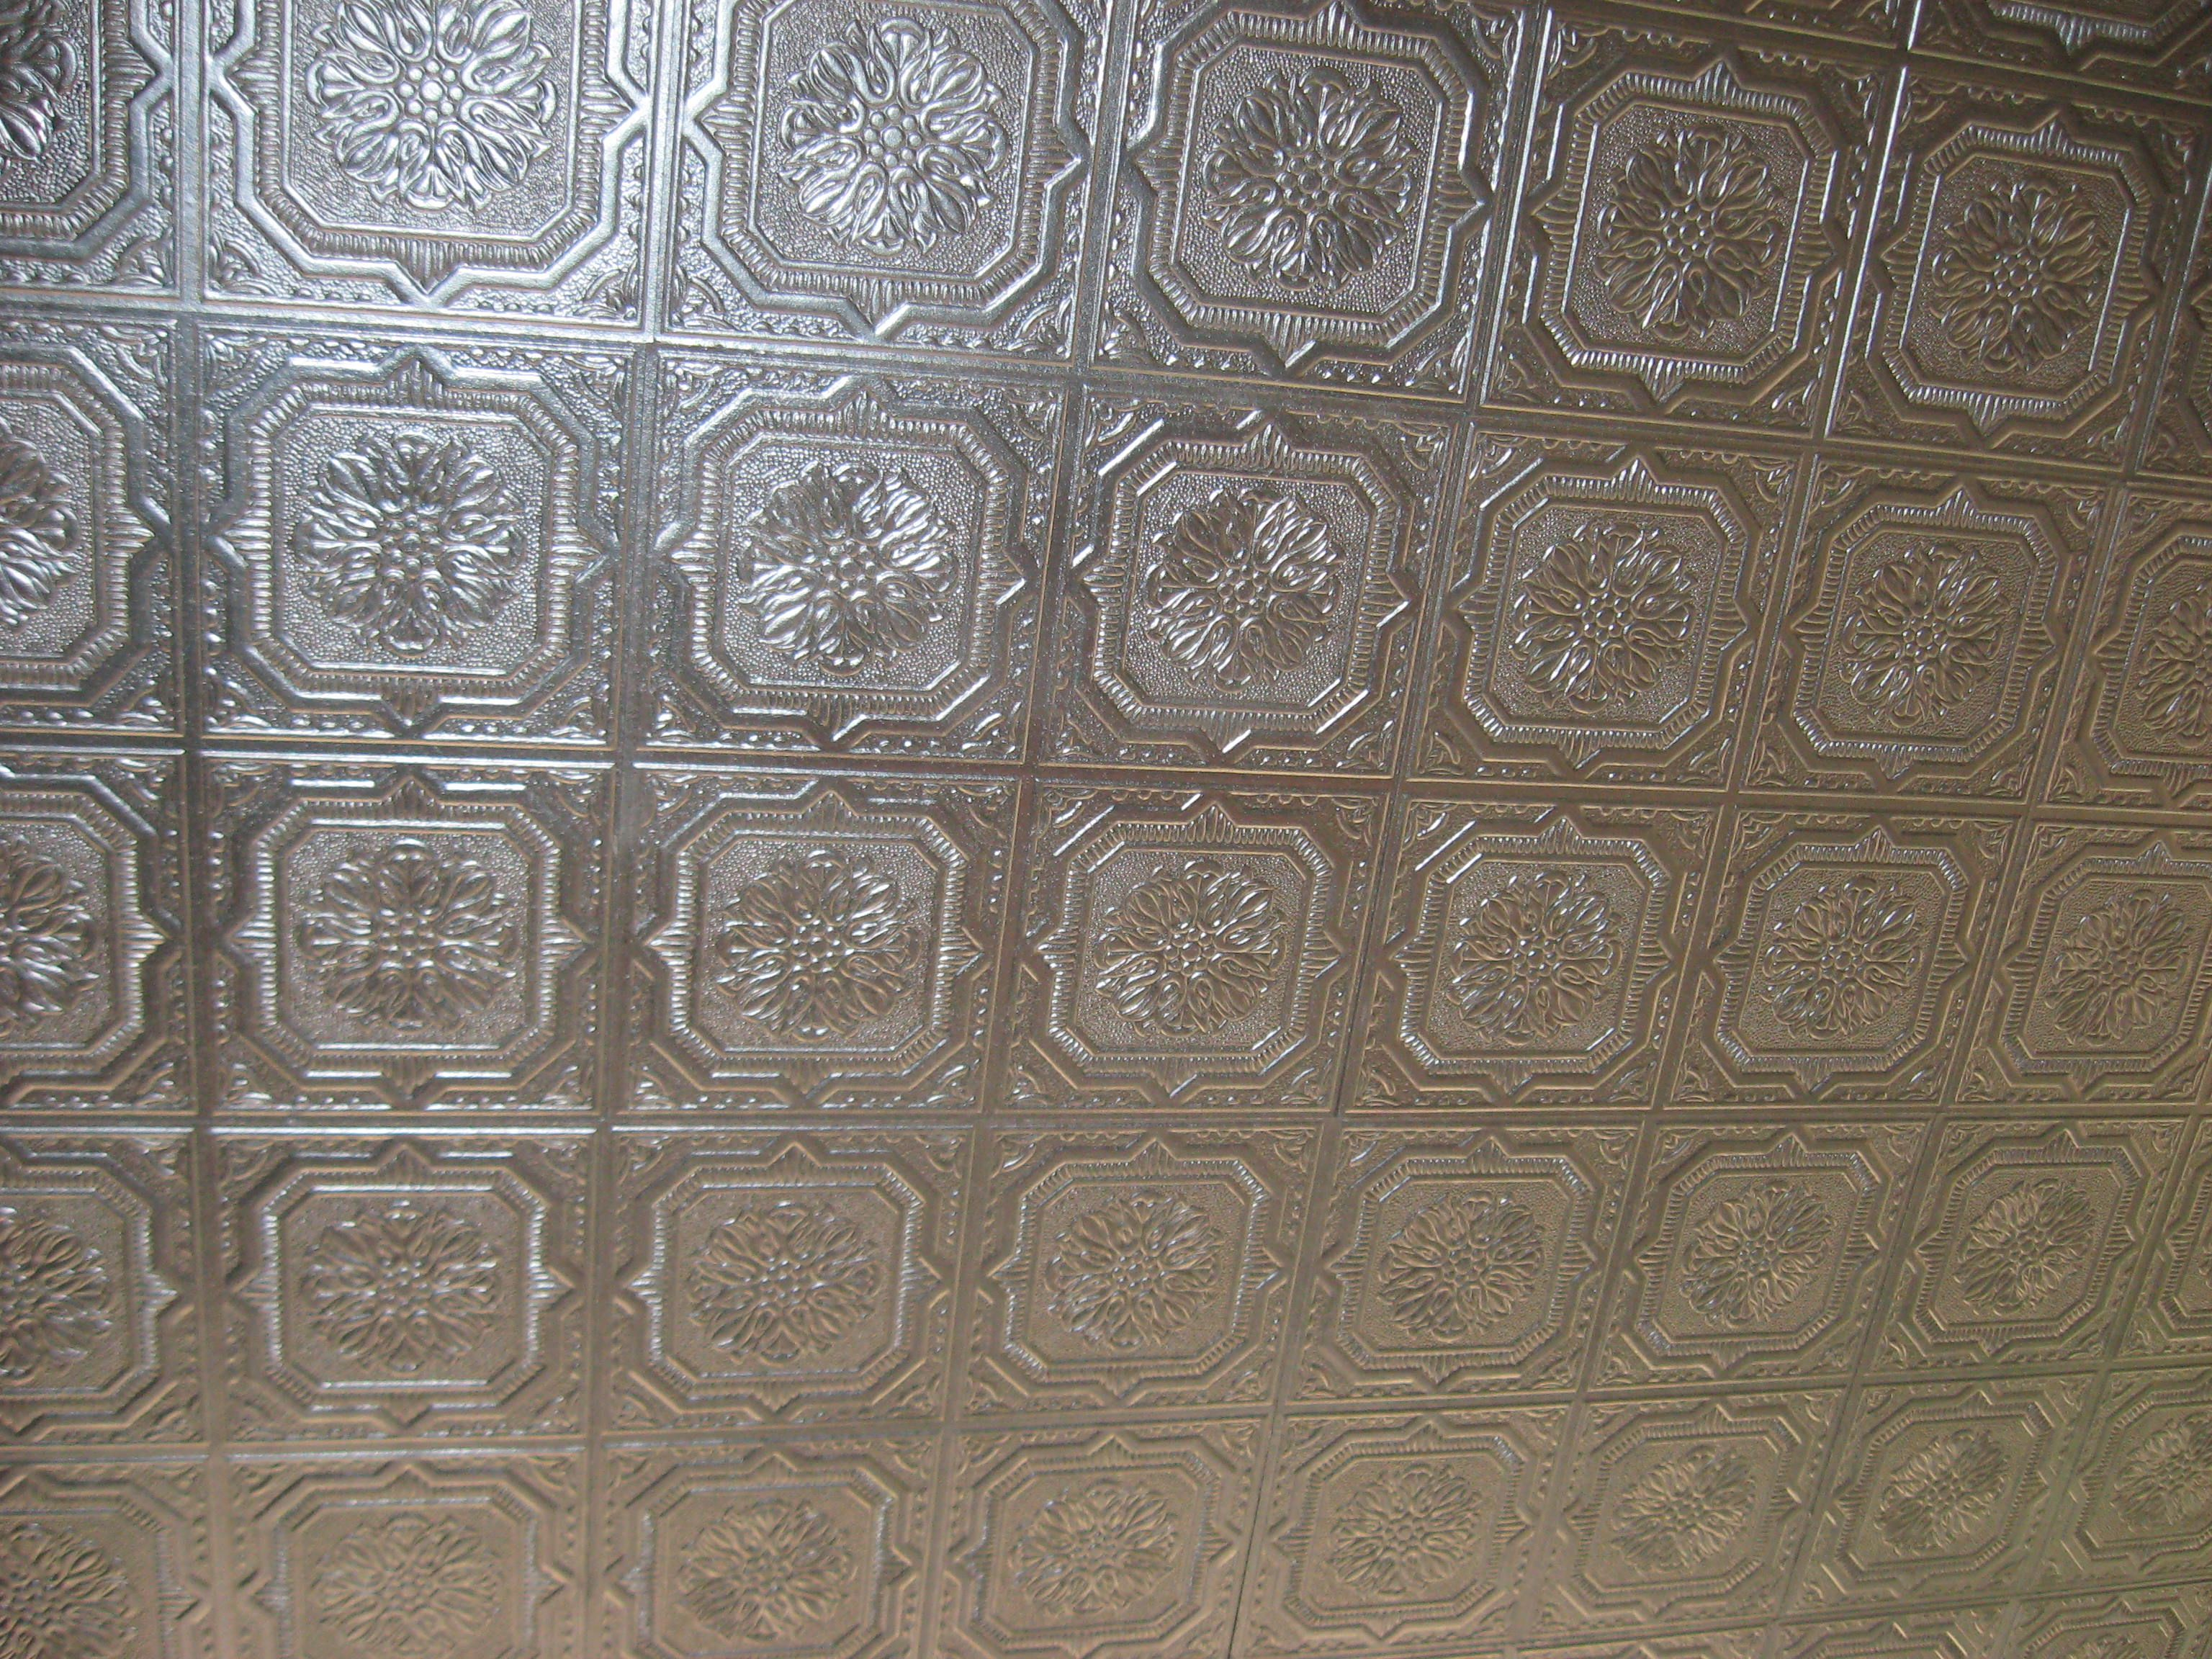 I made a faux tin ceiling in my sunroom after finding out how much i made a faux tin ceiling in my sunroom after finding out how much real tin ceilings cost painted inexpensive glue up ceiling tiles from lowes with dailygadgetfo Choice Image